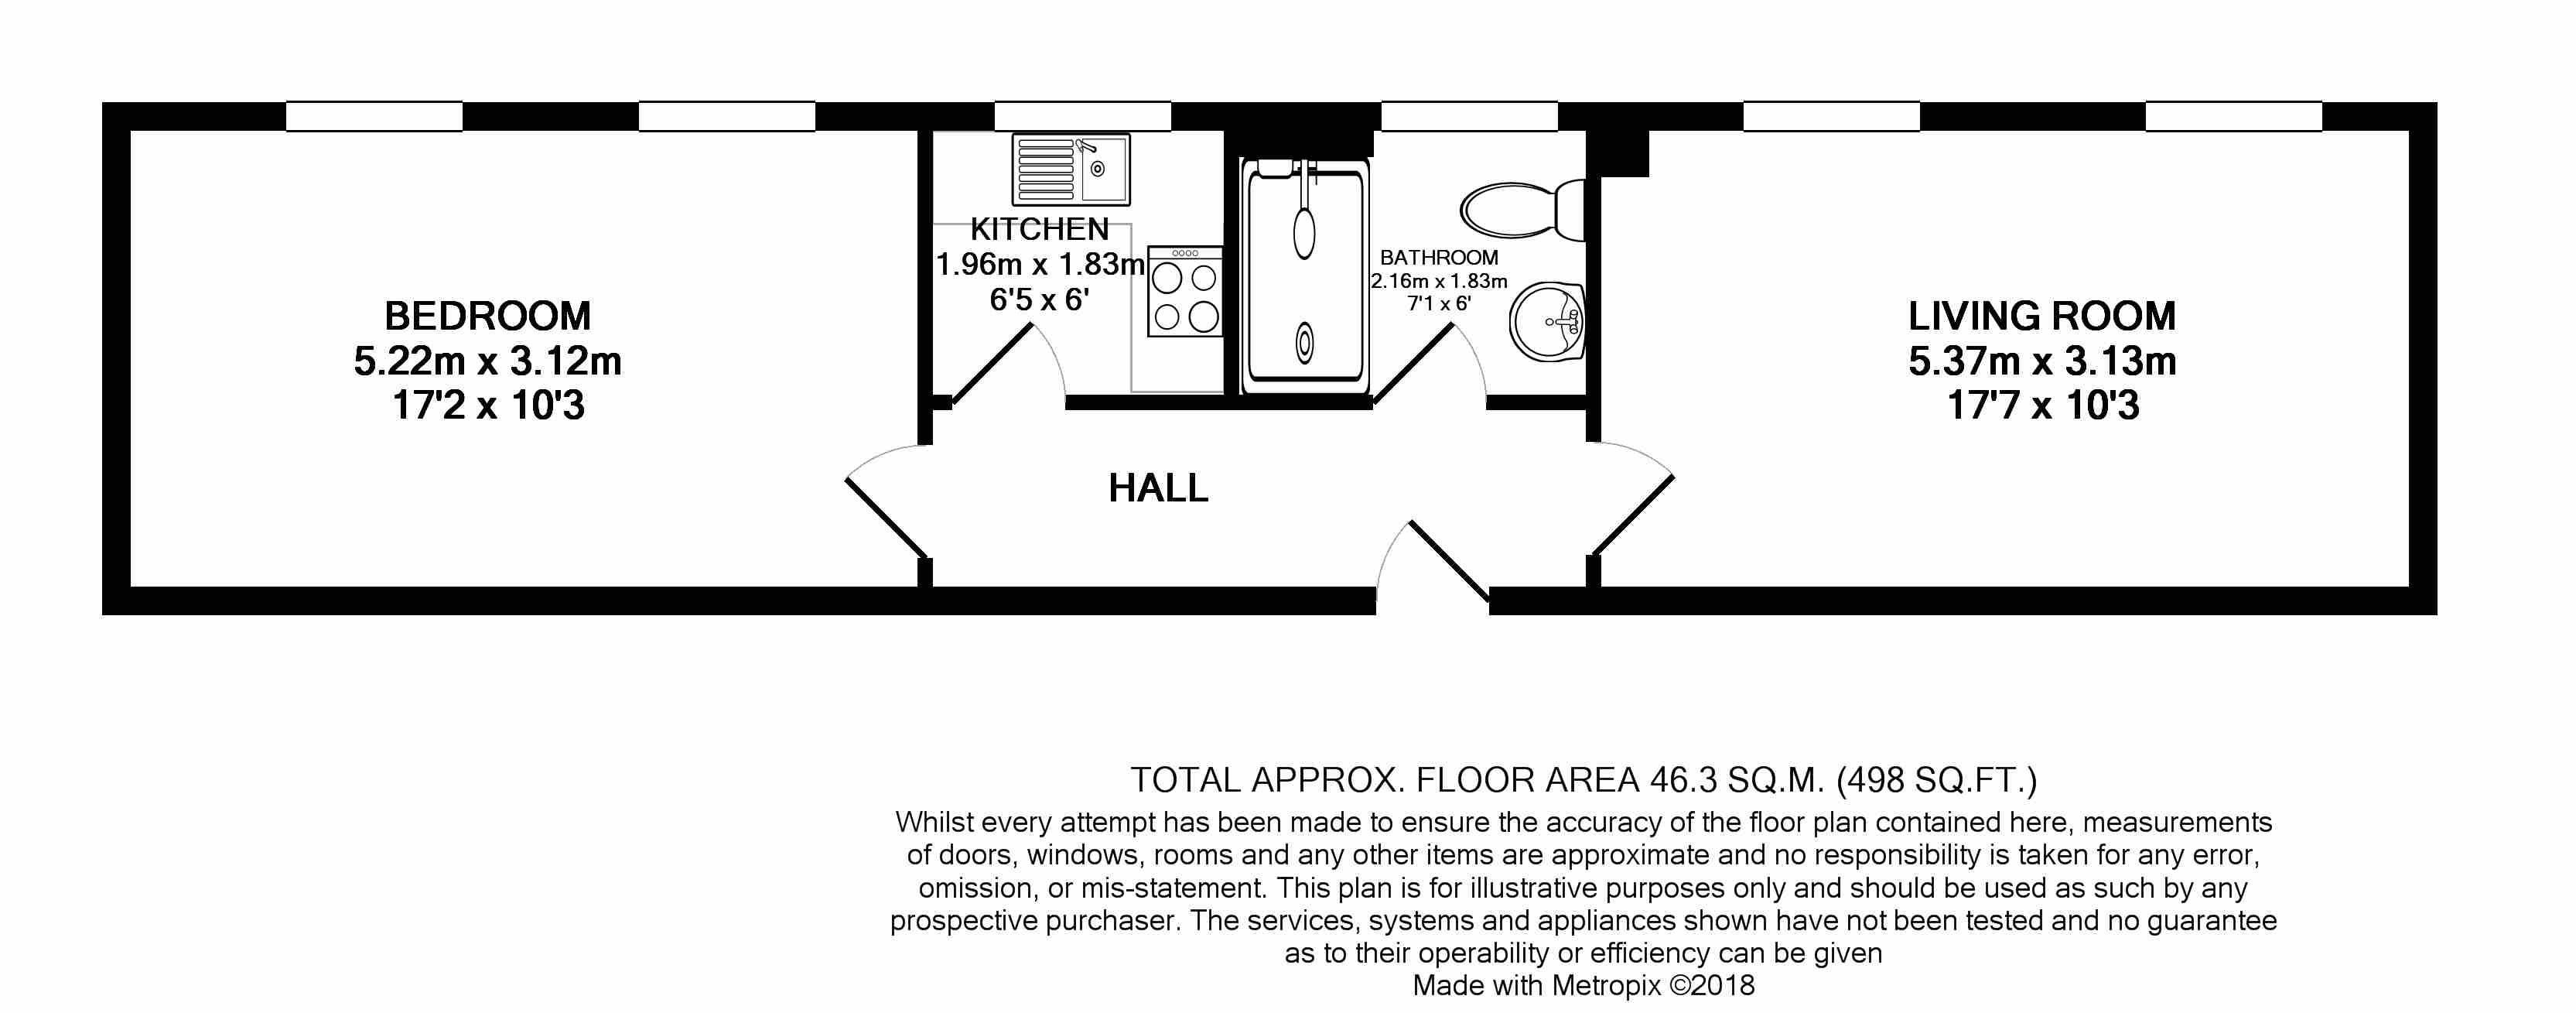 10 Alexander Hall Floorplan